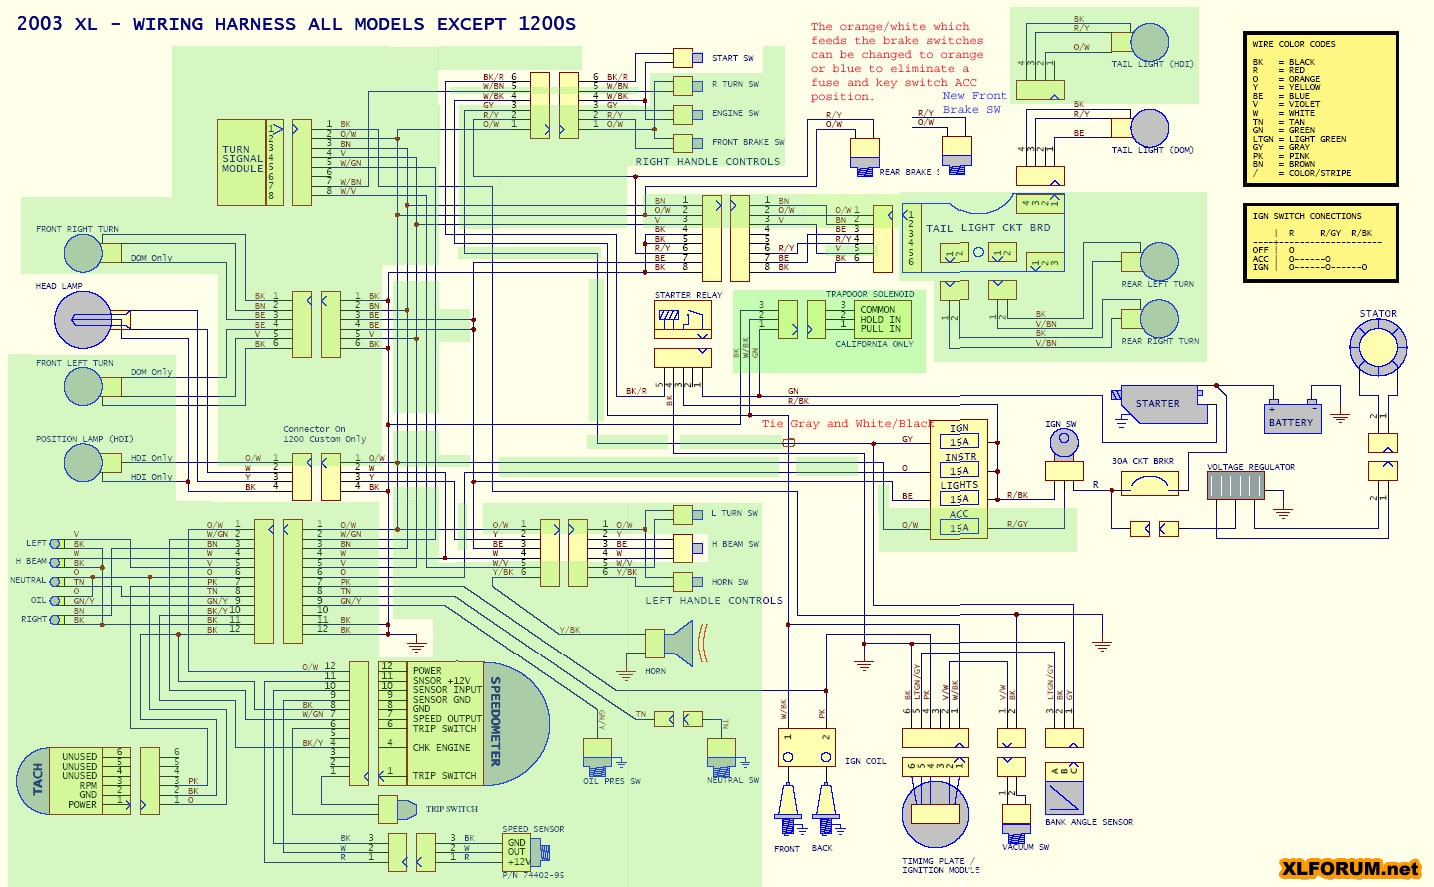 2000 Sportster 883 Wiring Diagram - Wiring Diagram